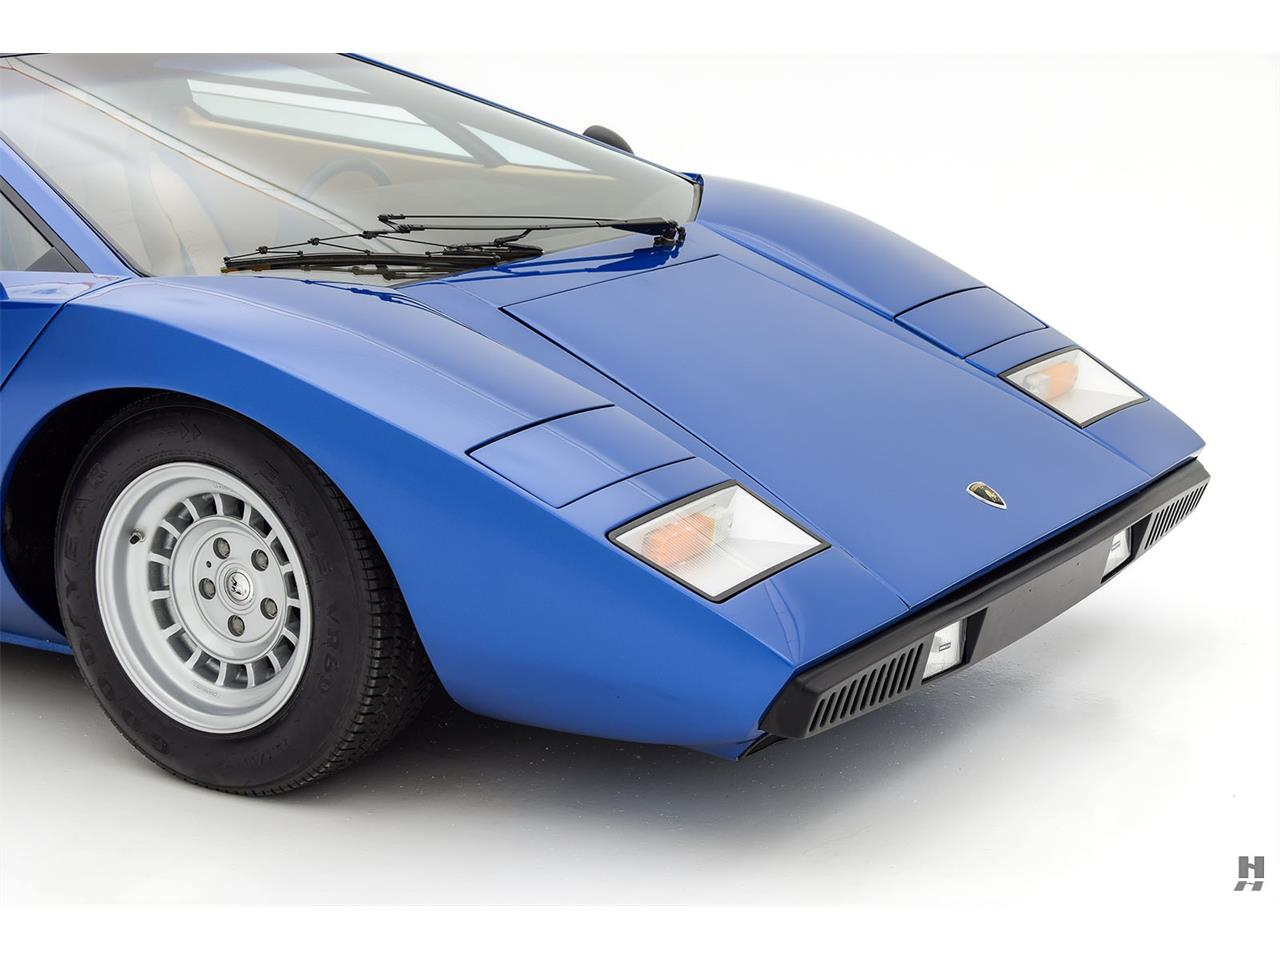 Large Picture of 1975 Countach LP400 - $1,225,000.00 - OVNJ